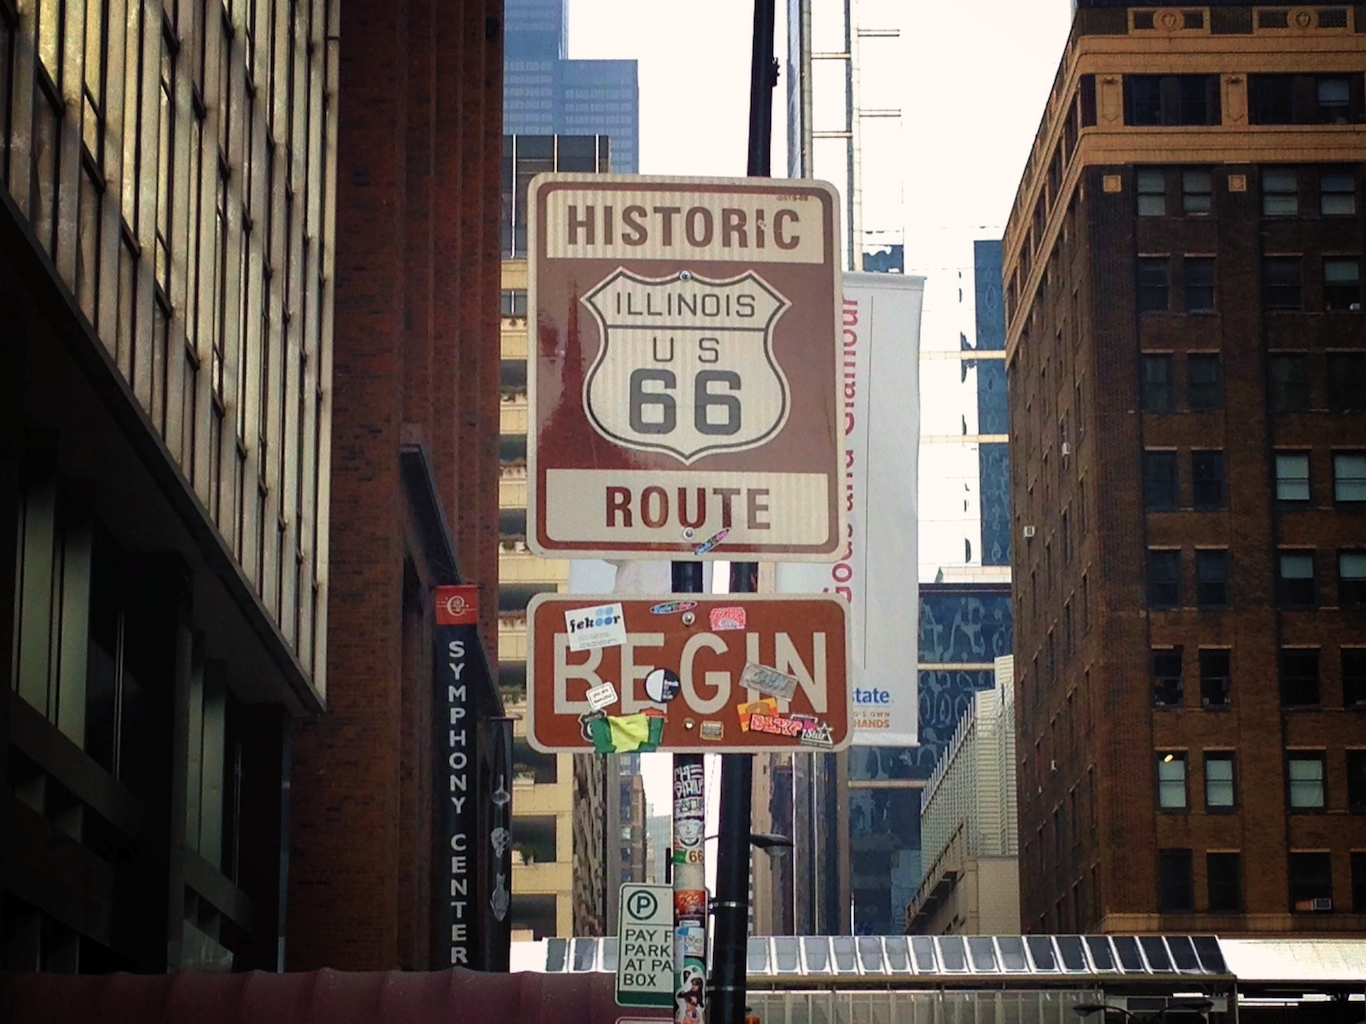 Begin your Route 66 adventure here.